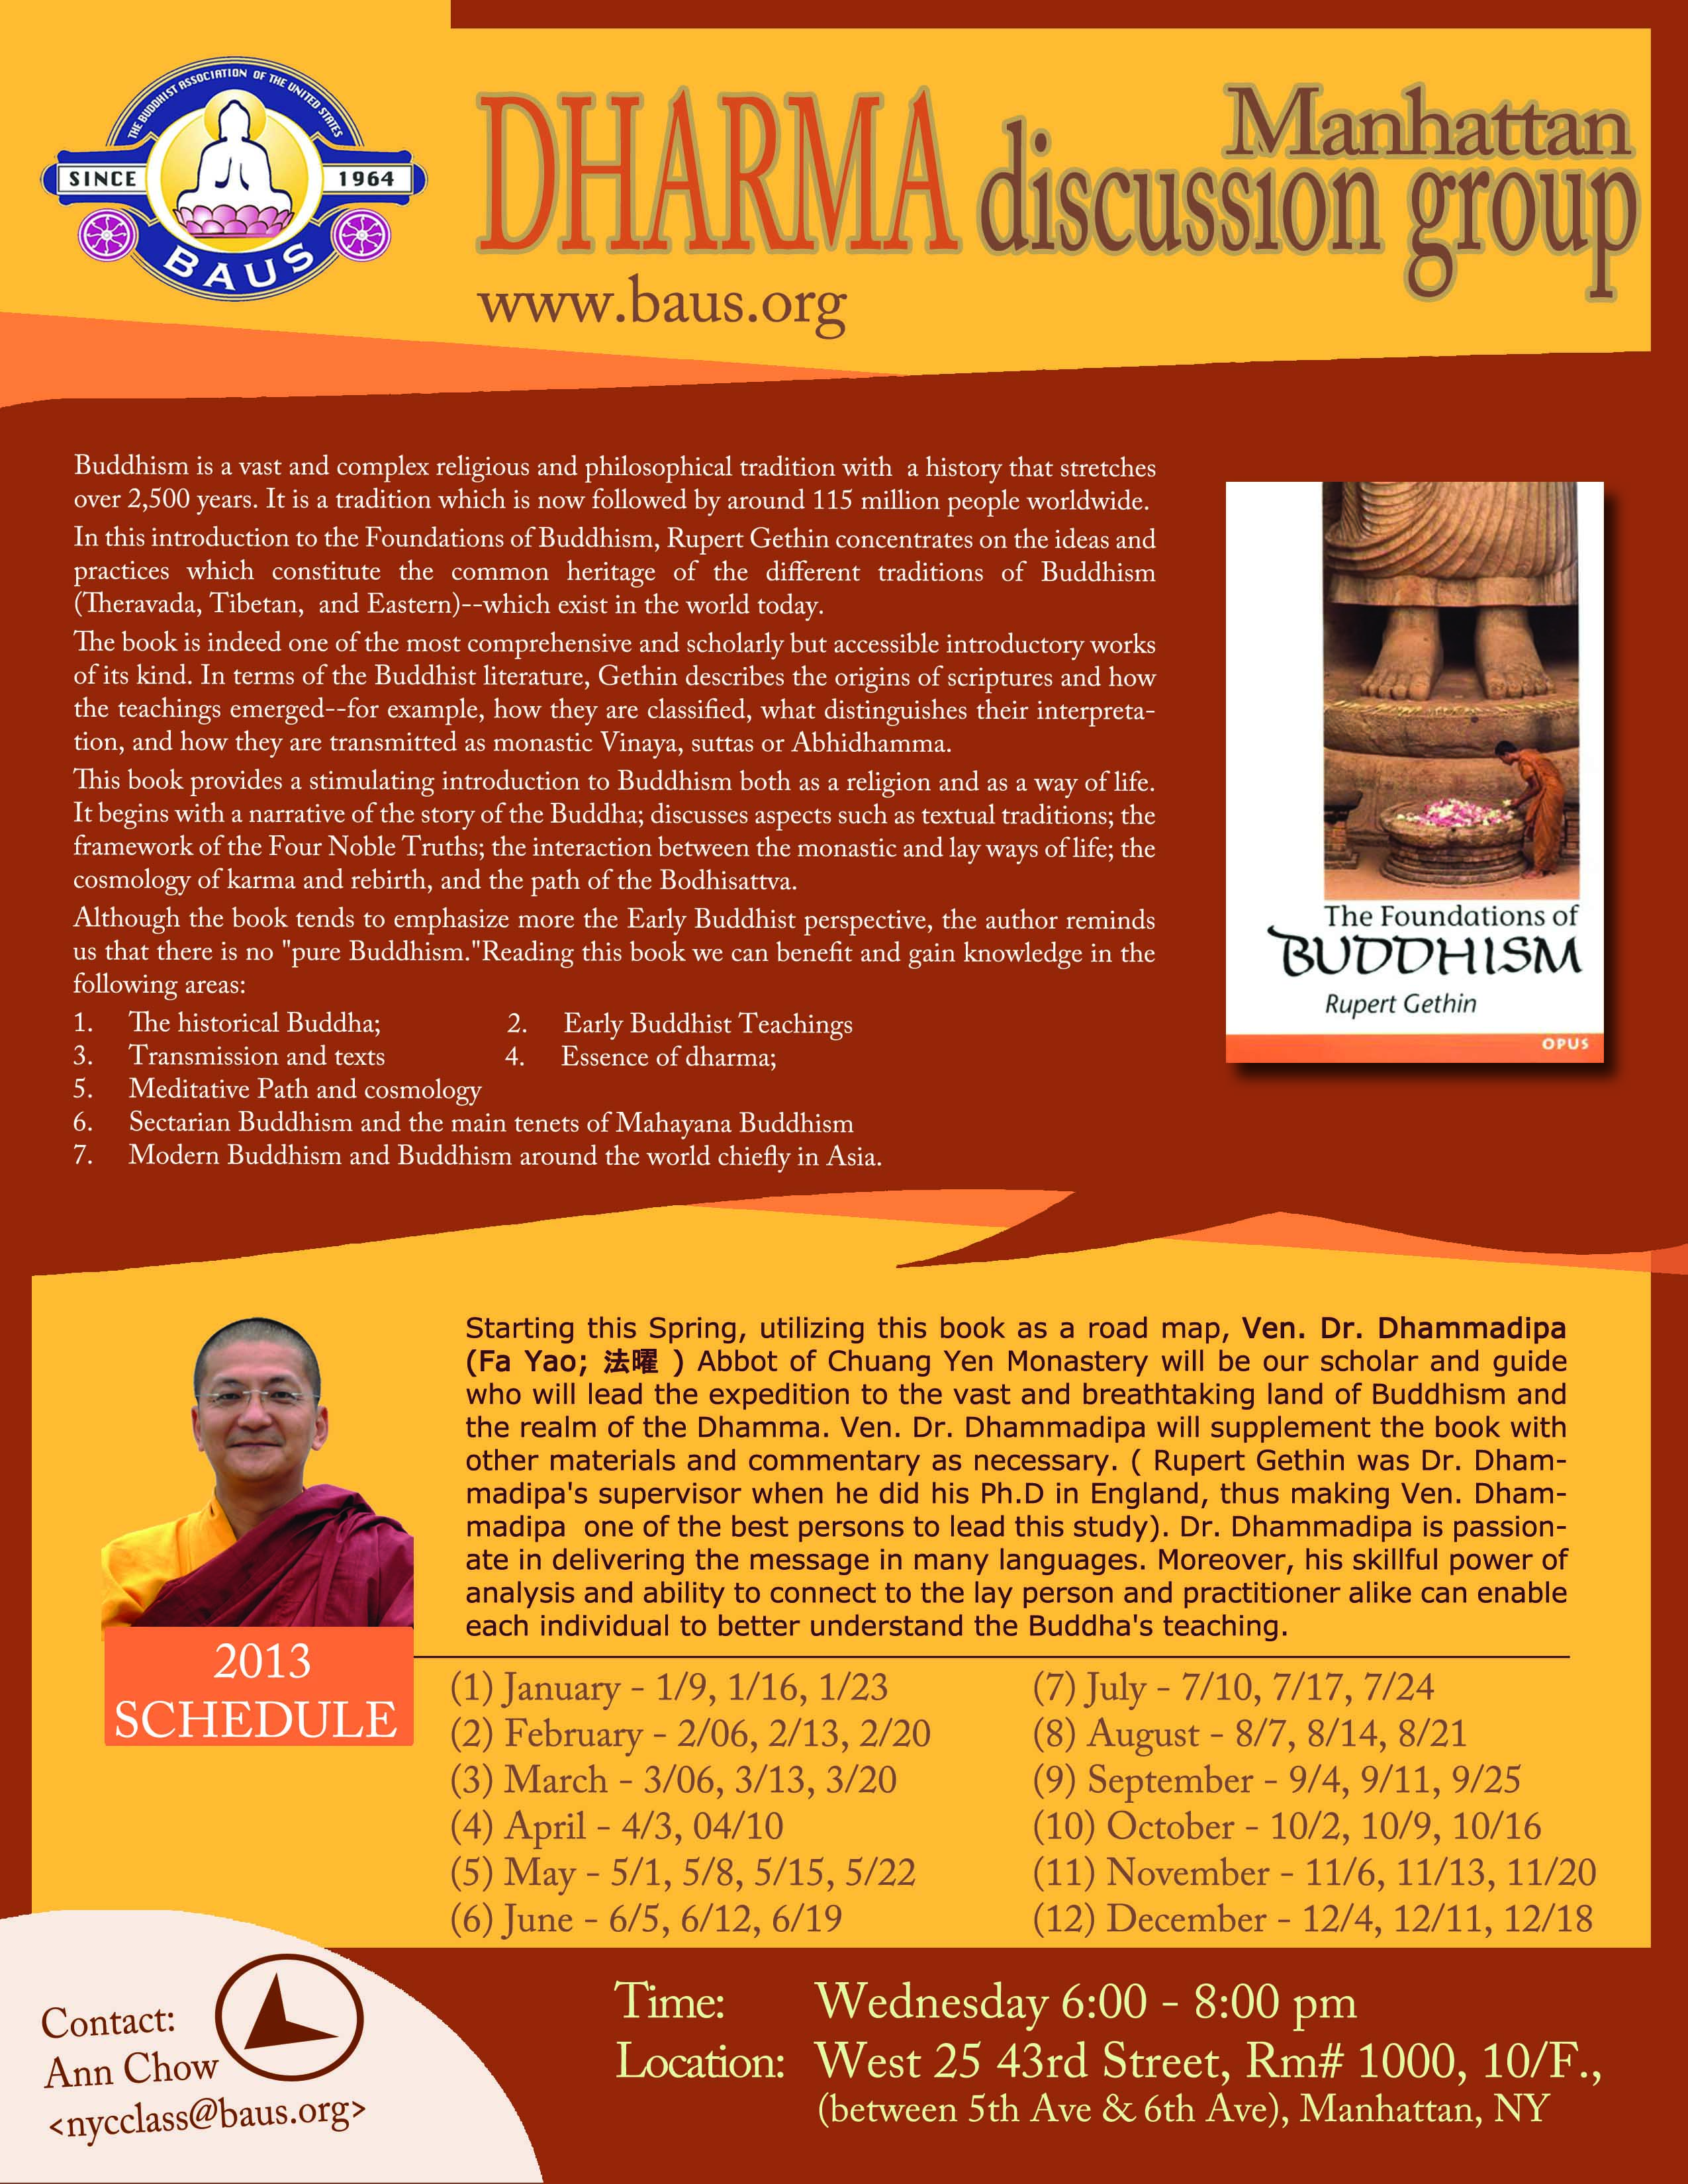 Dharma Discussion with Ven. Dhammadipa Sak in NYC (1/9-12/18/2013)